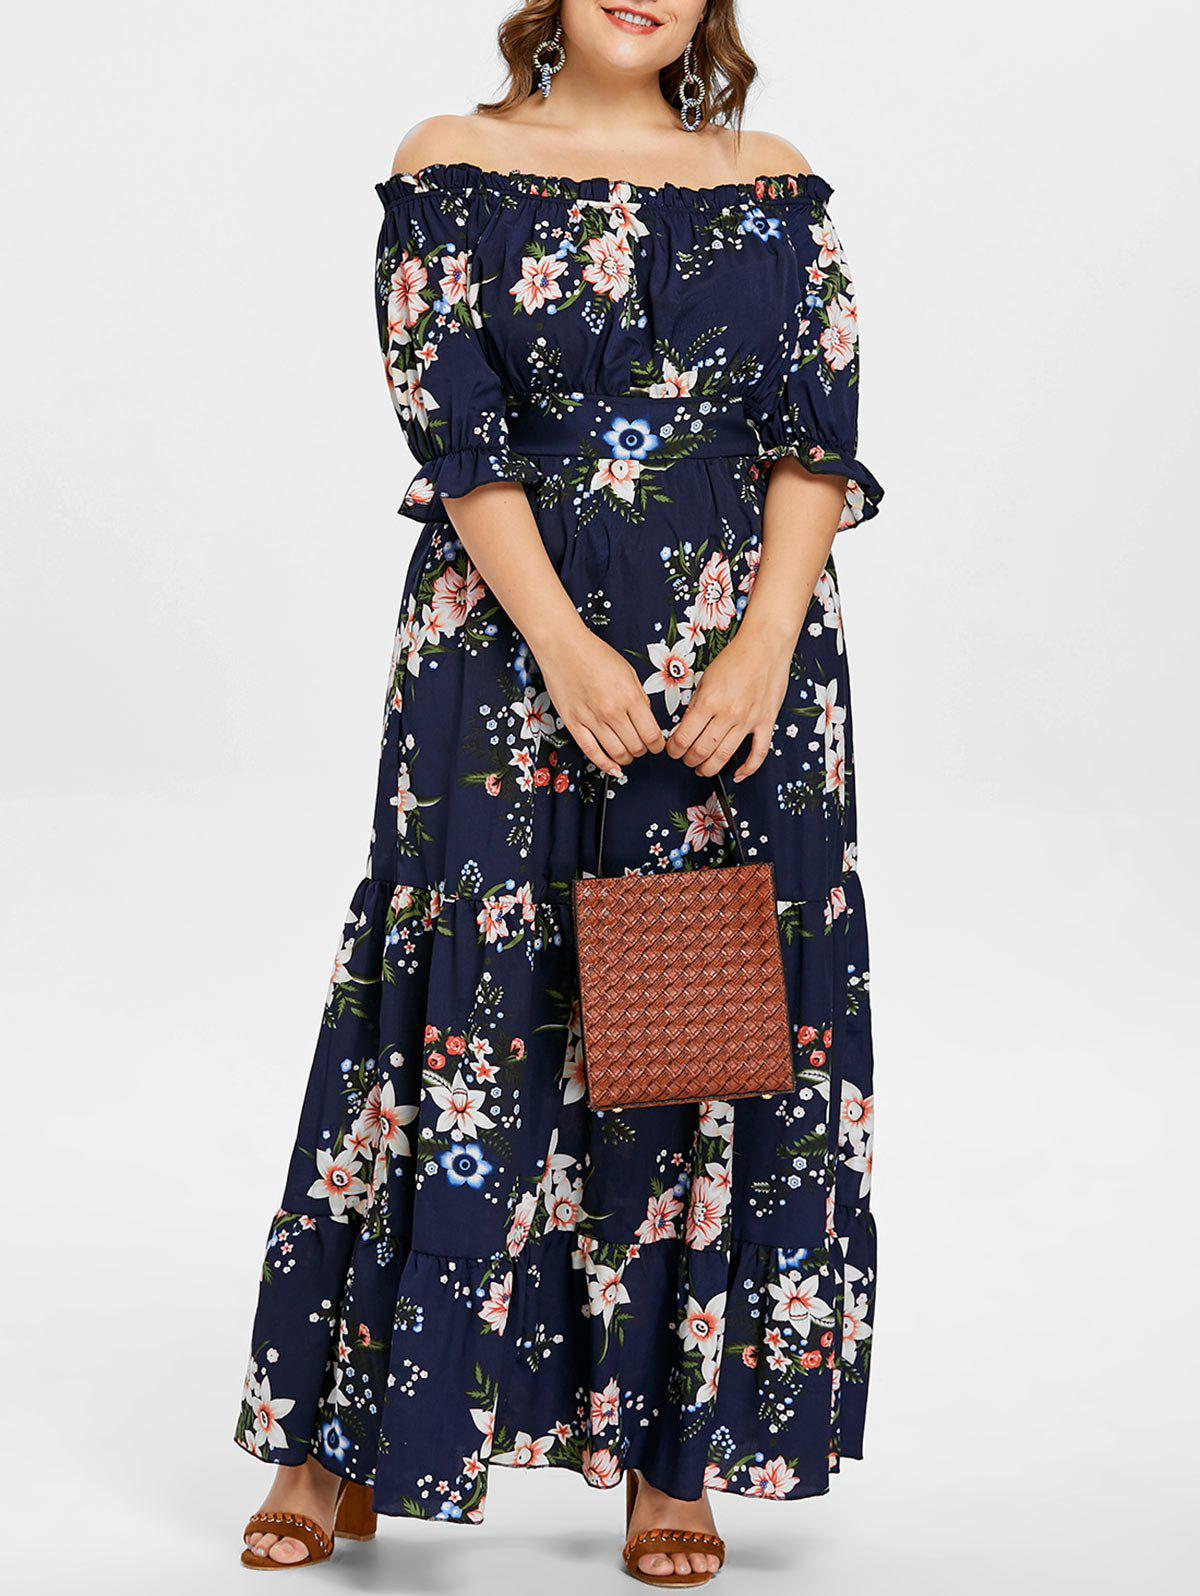 45% OFF] Flower Off Shoulder Plus Size Dress | Rosegal